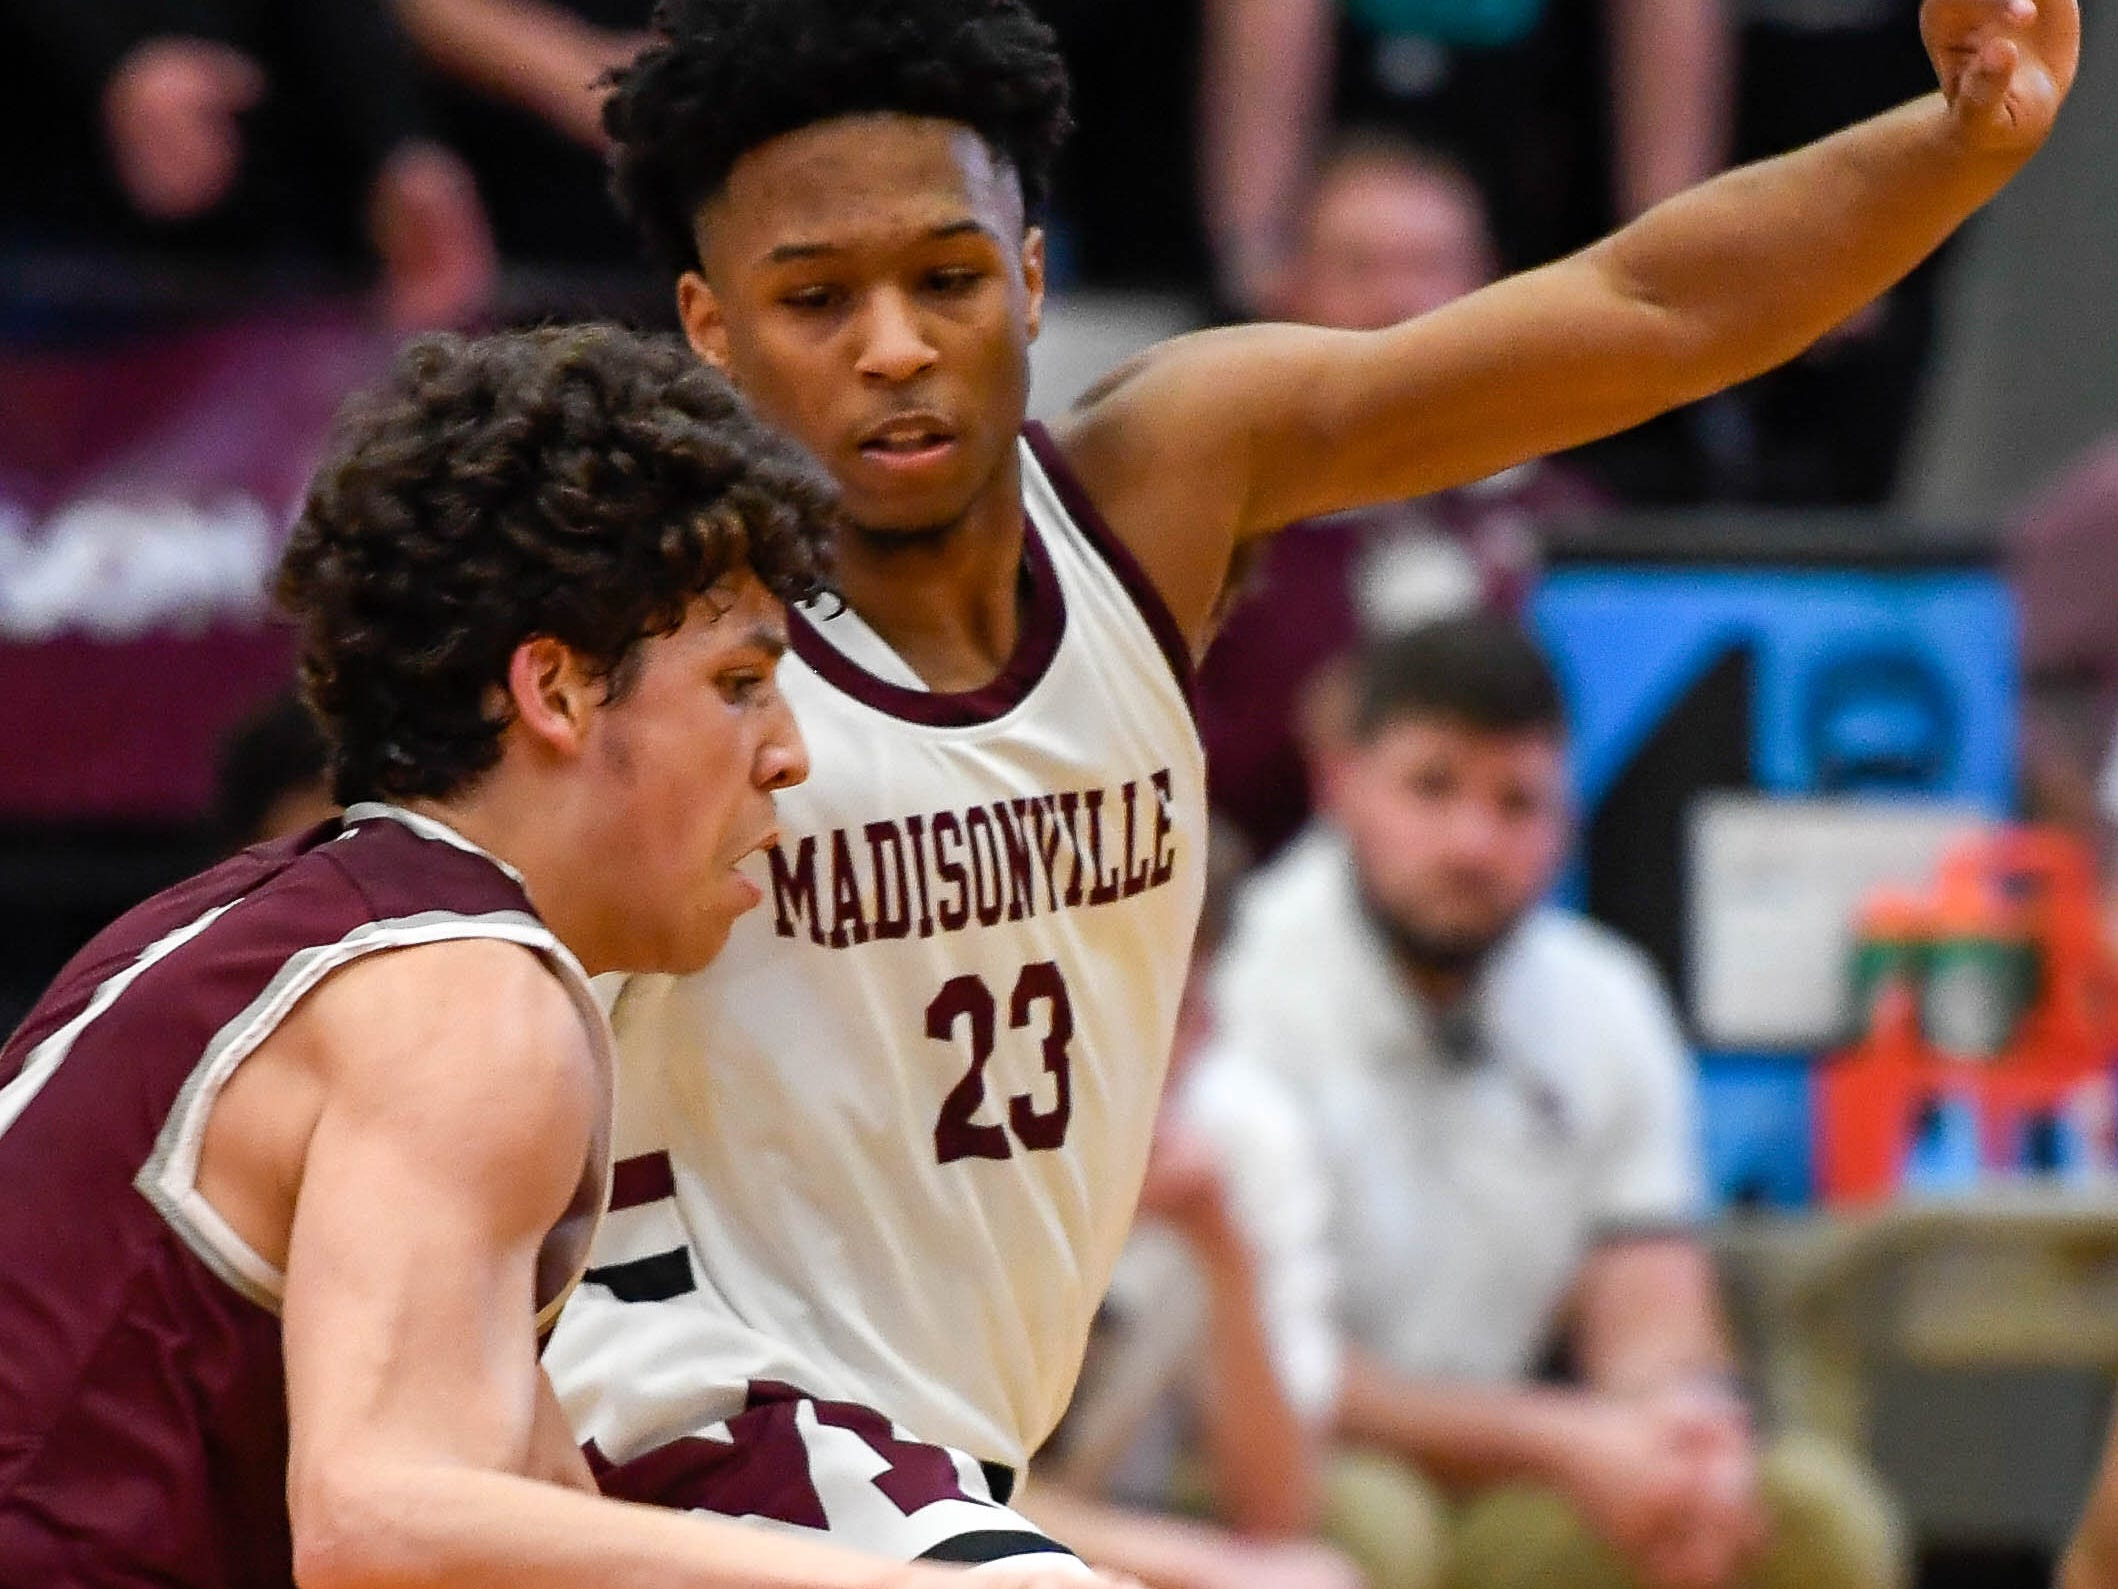 Henderson's Corey Stewart (1) drives  against Madisonville's Marquise Parker (23) as the Henderson County Colonels play the Madisonville Maroons in the Boys 2nd Region basketball semi-finals Friday in Hansen, March 1, 2019.